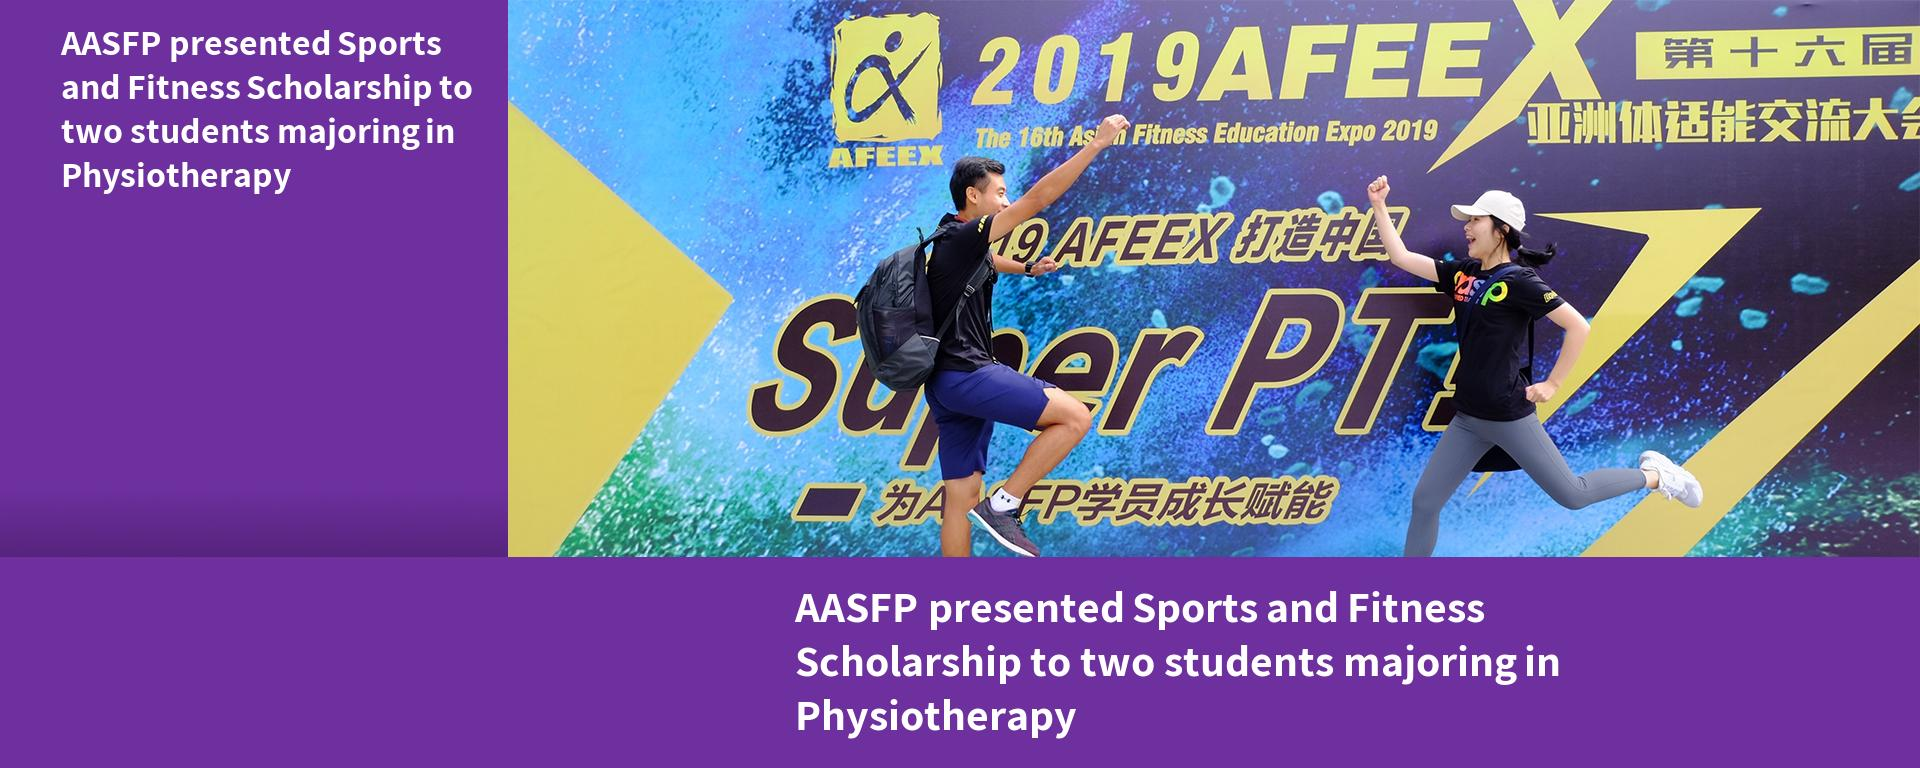 AASFP presented Sports and Fitness Scholarship to two students majoring in Physiotherapy